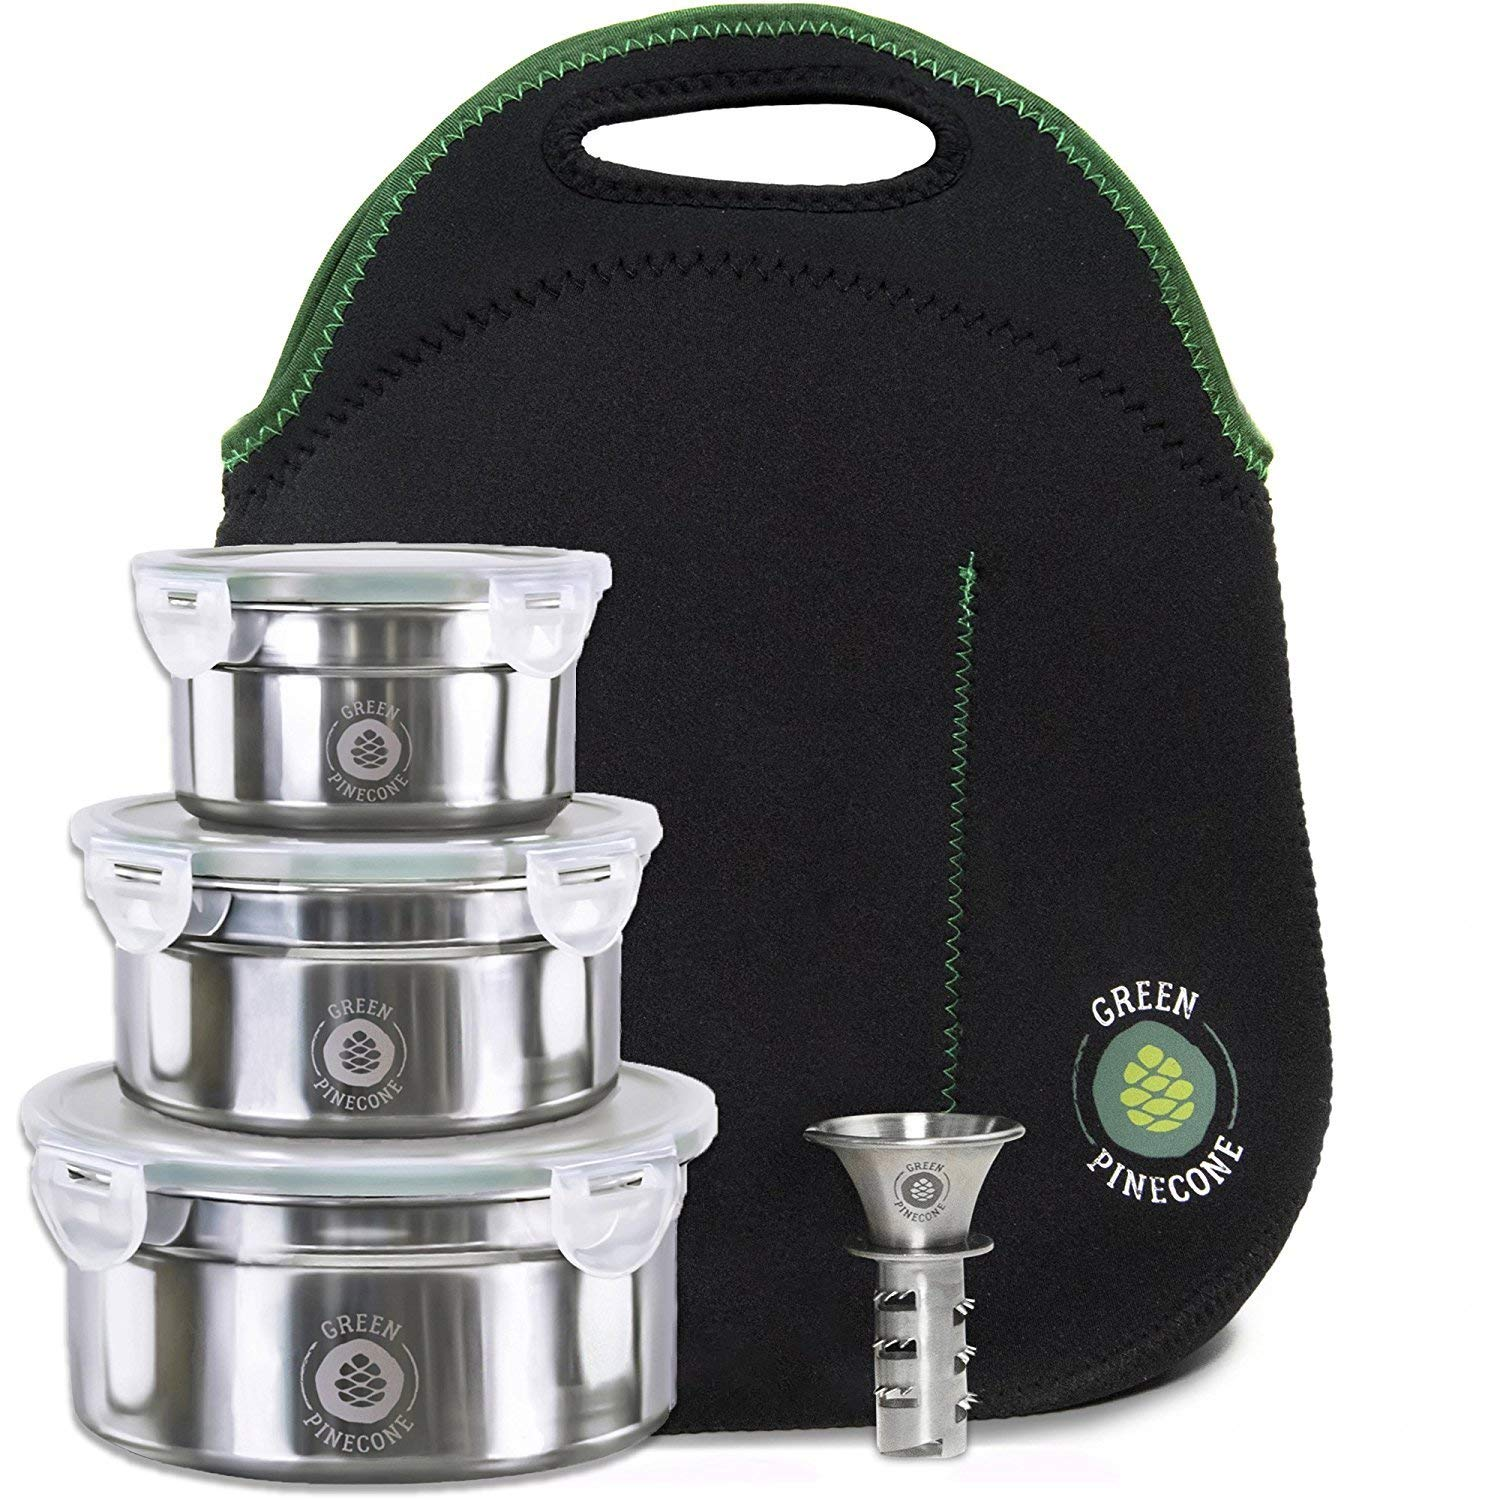 Leakproof Stainless Steel Lunchbox Set. 3 Stackable Metal Containers & Thermal Bag. Men Women Girl Boy. Keep Food Warm. Cool Salad. Work & School. Leak Proof Storage. Large & Small Tins. 2 BONUSES. by GREEN PINECONE